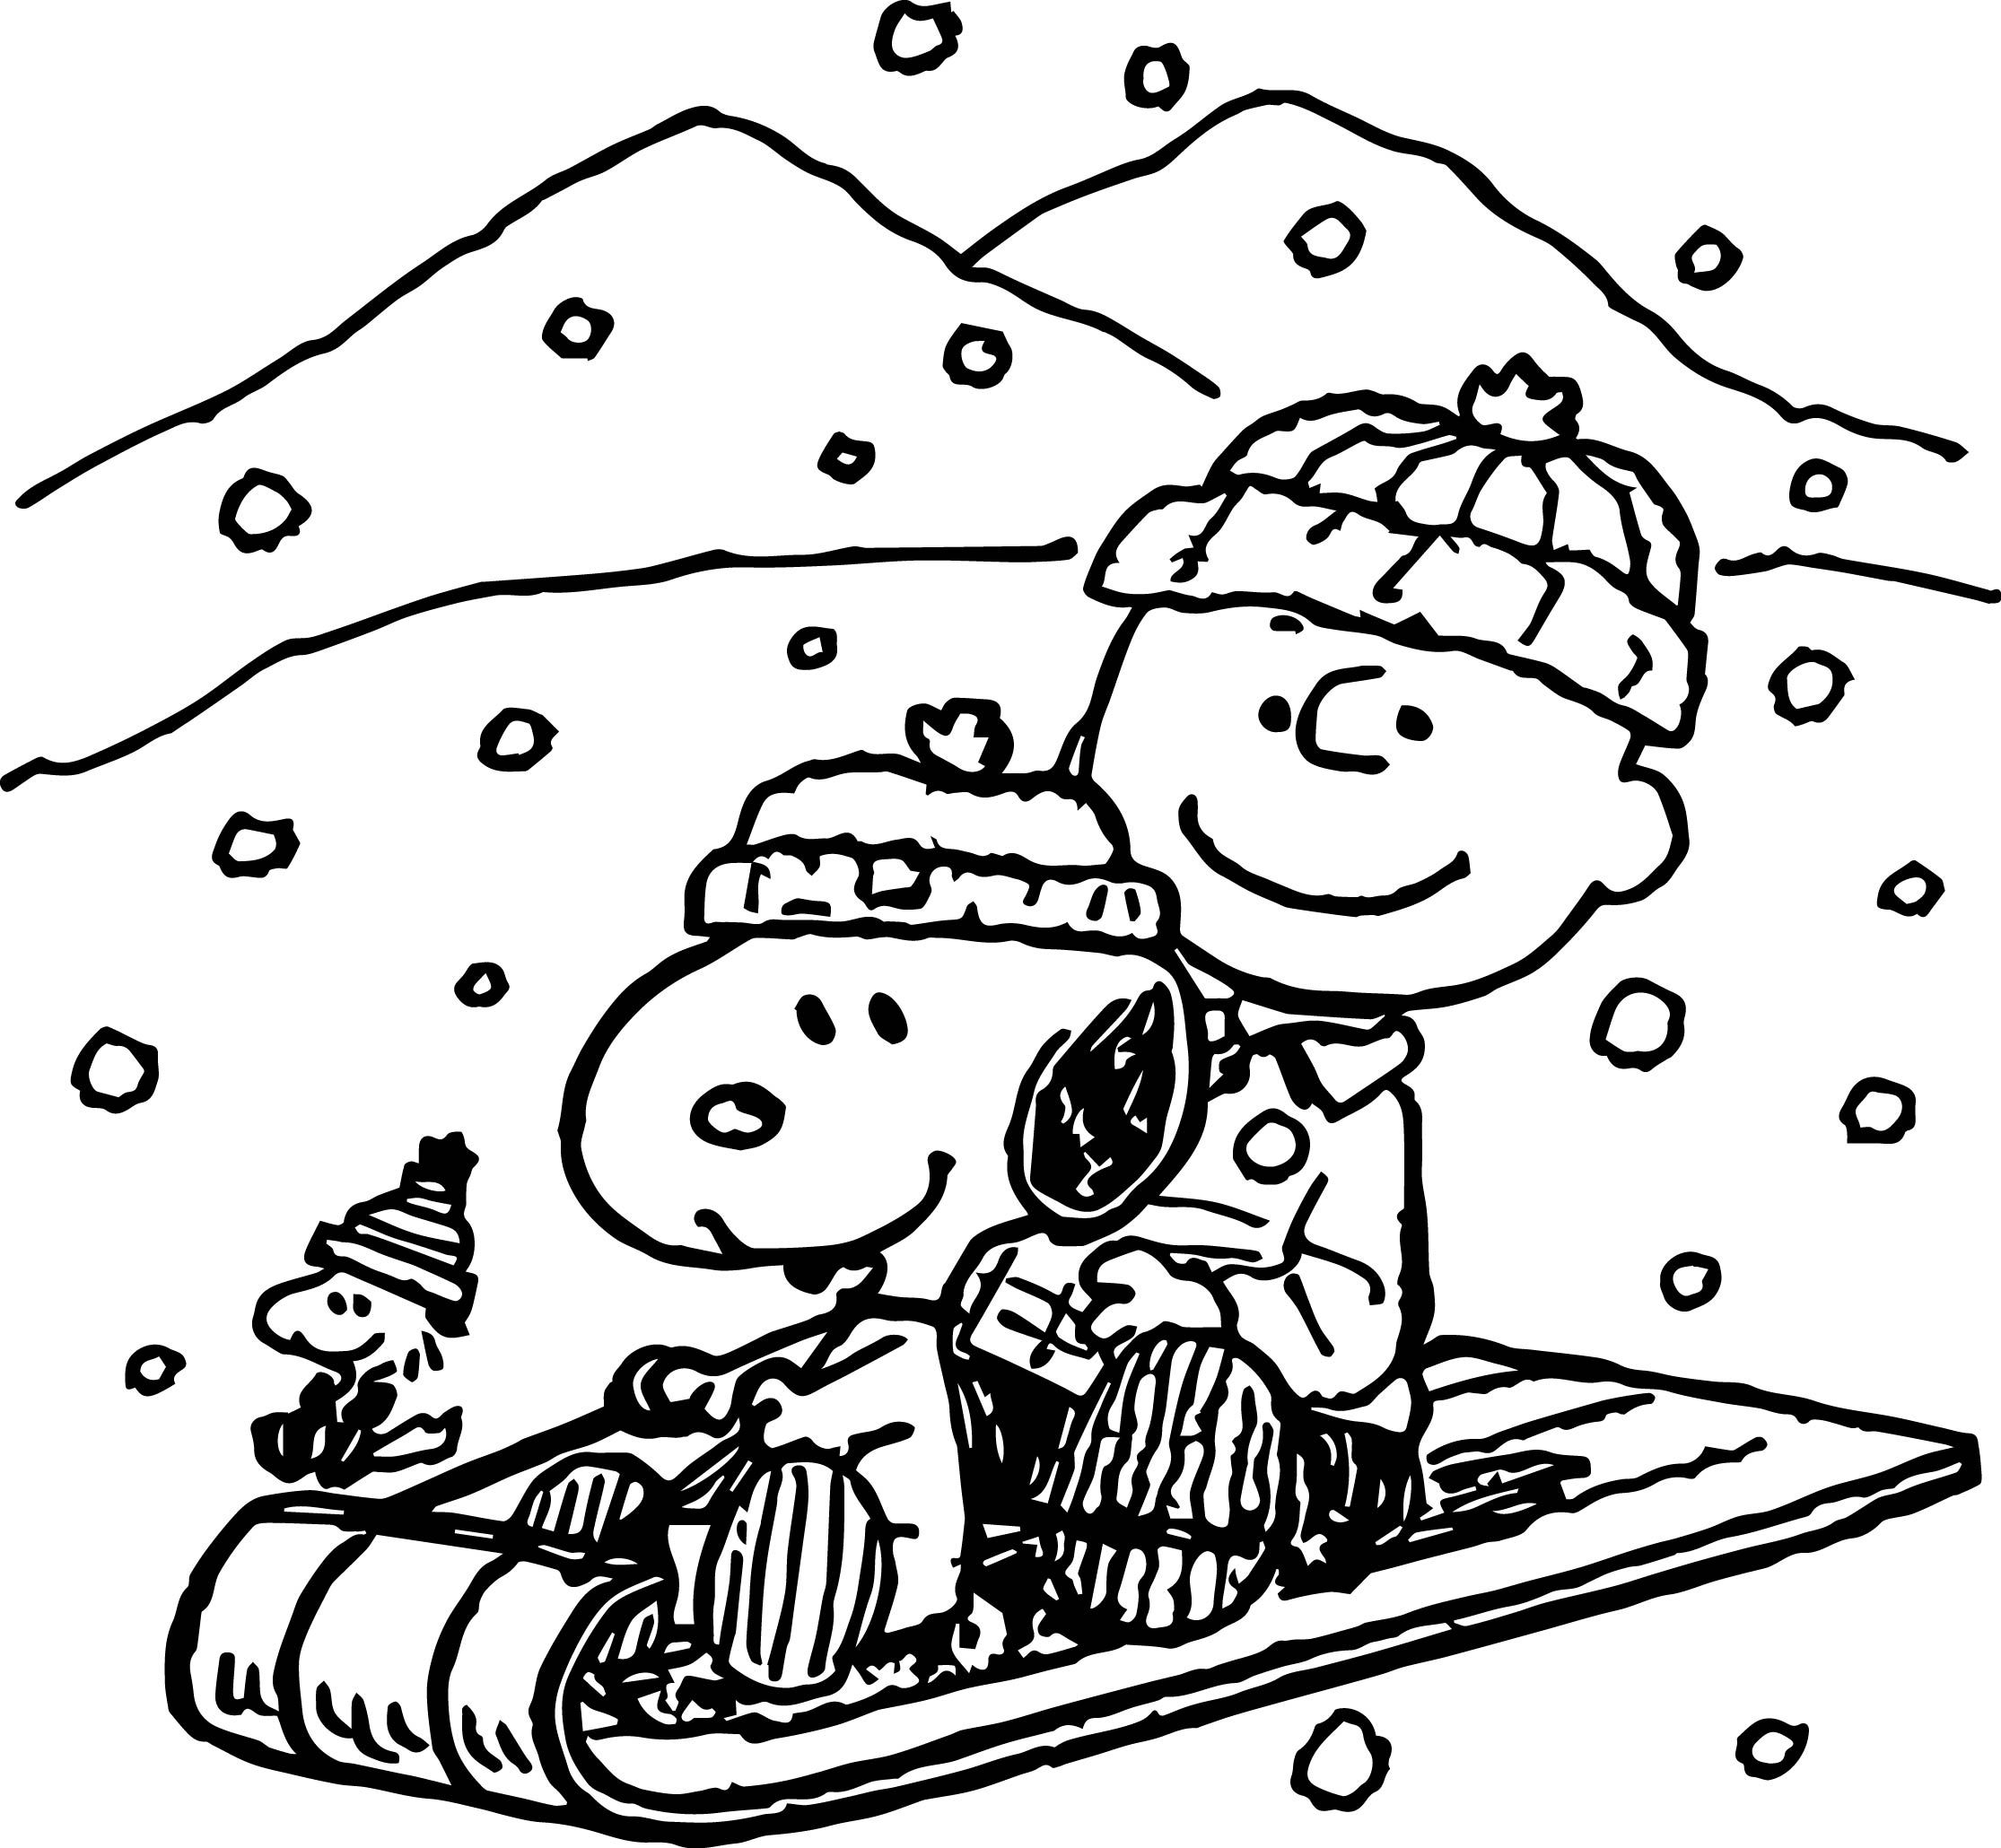 Free Peanuts Coloring Pages At Getcolorings